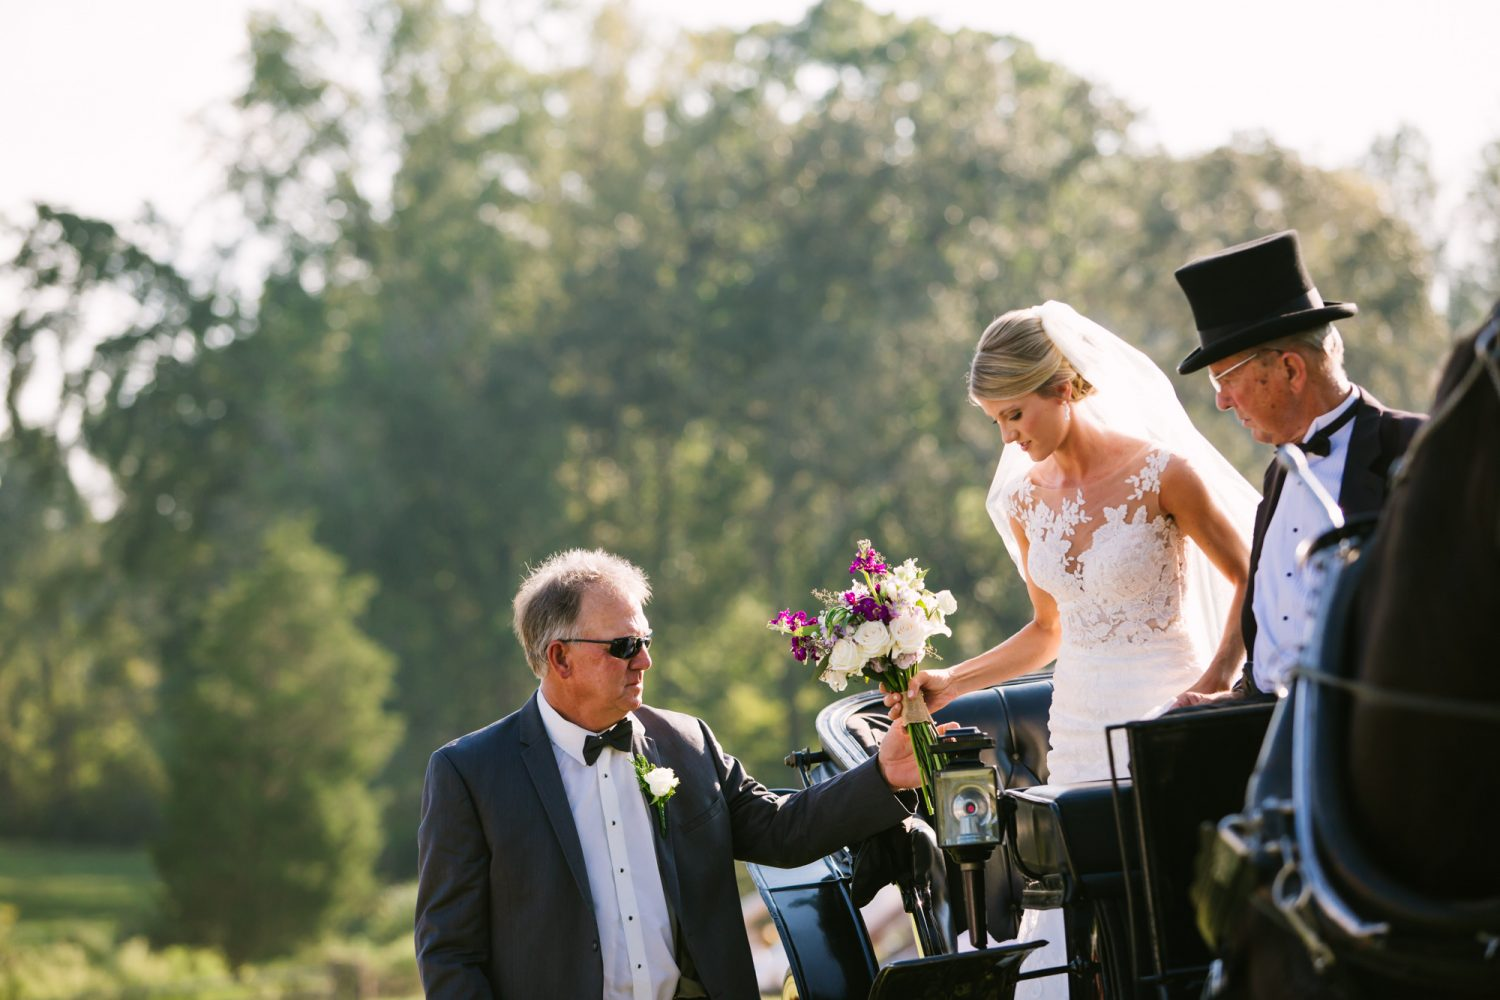 Waynesville, NC Wedding Photography | Father Helping Bride from Horse Carriage